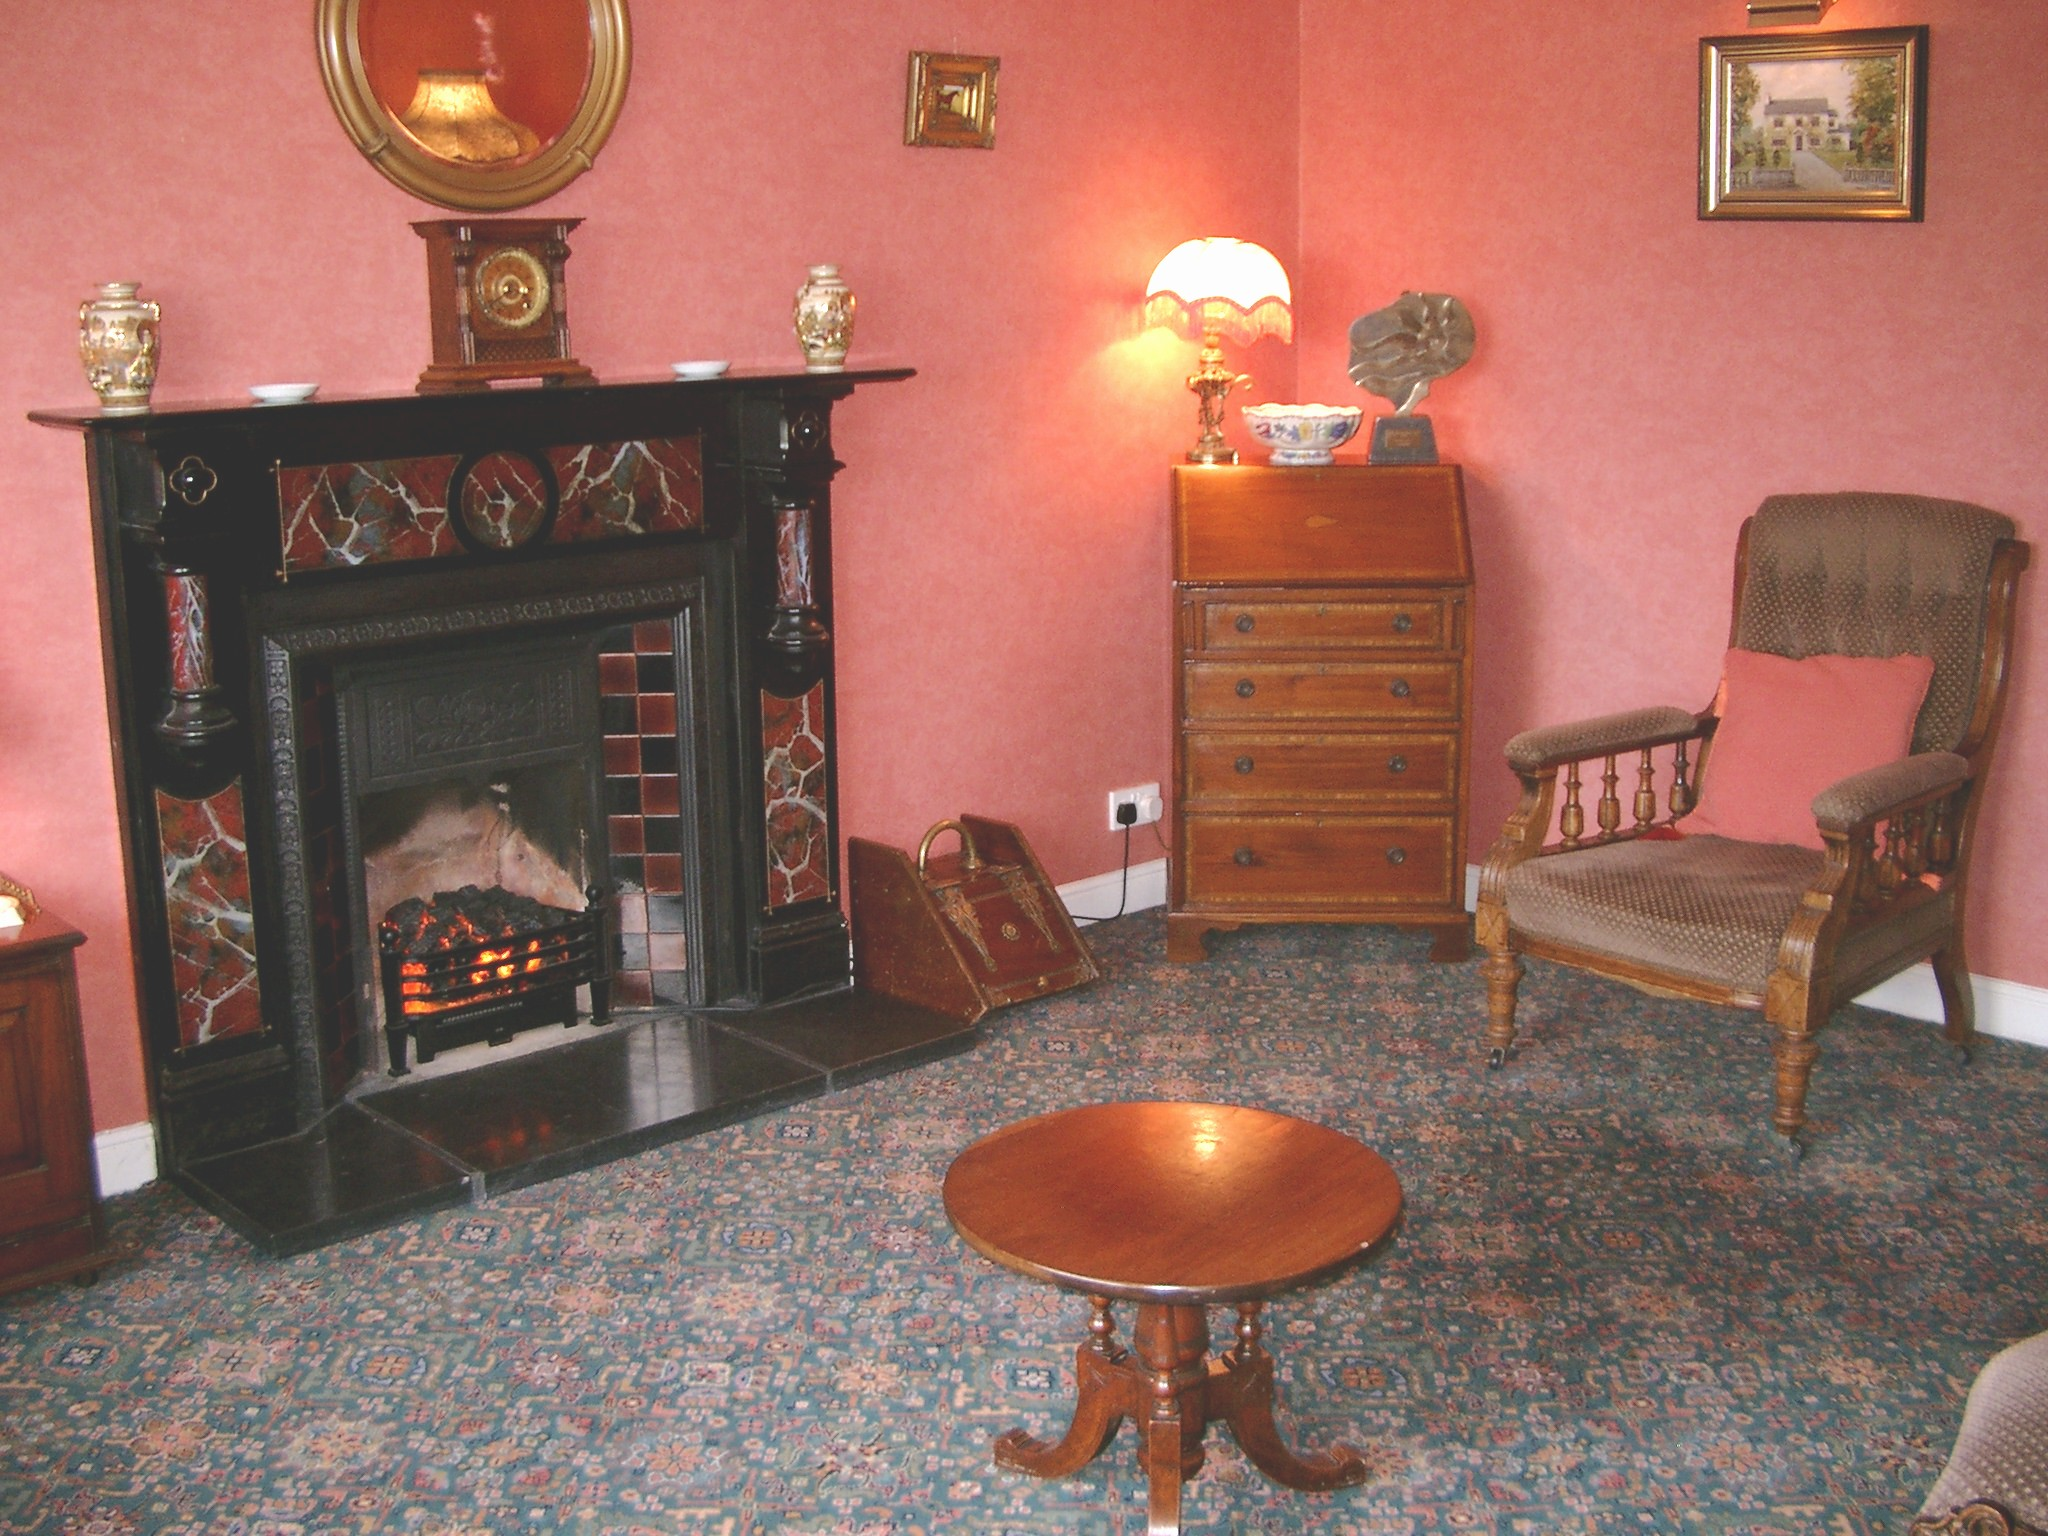 Hillgrove Bed And Breakfast Kilkenny Ireland